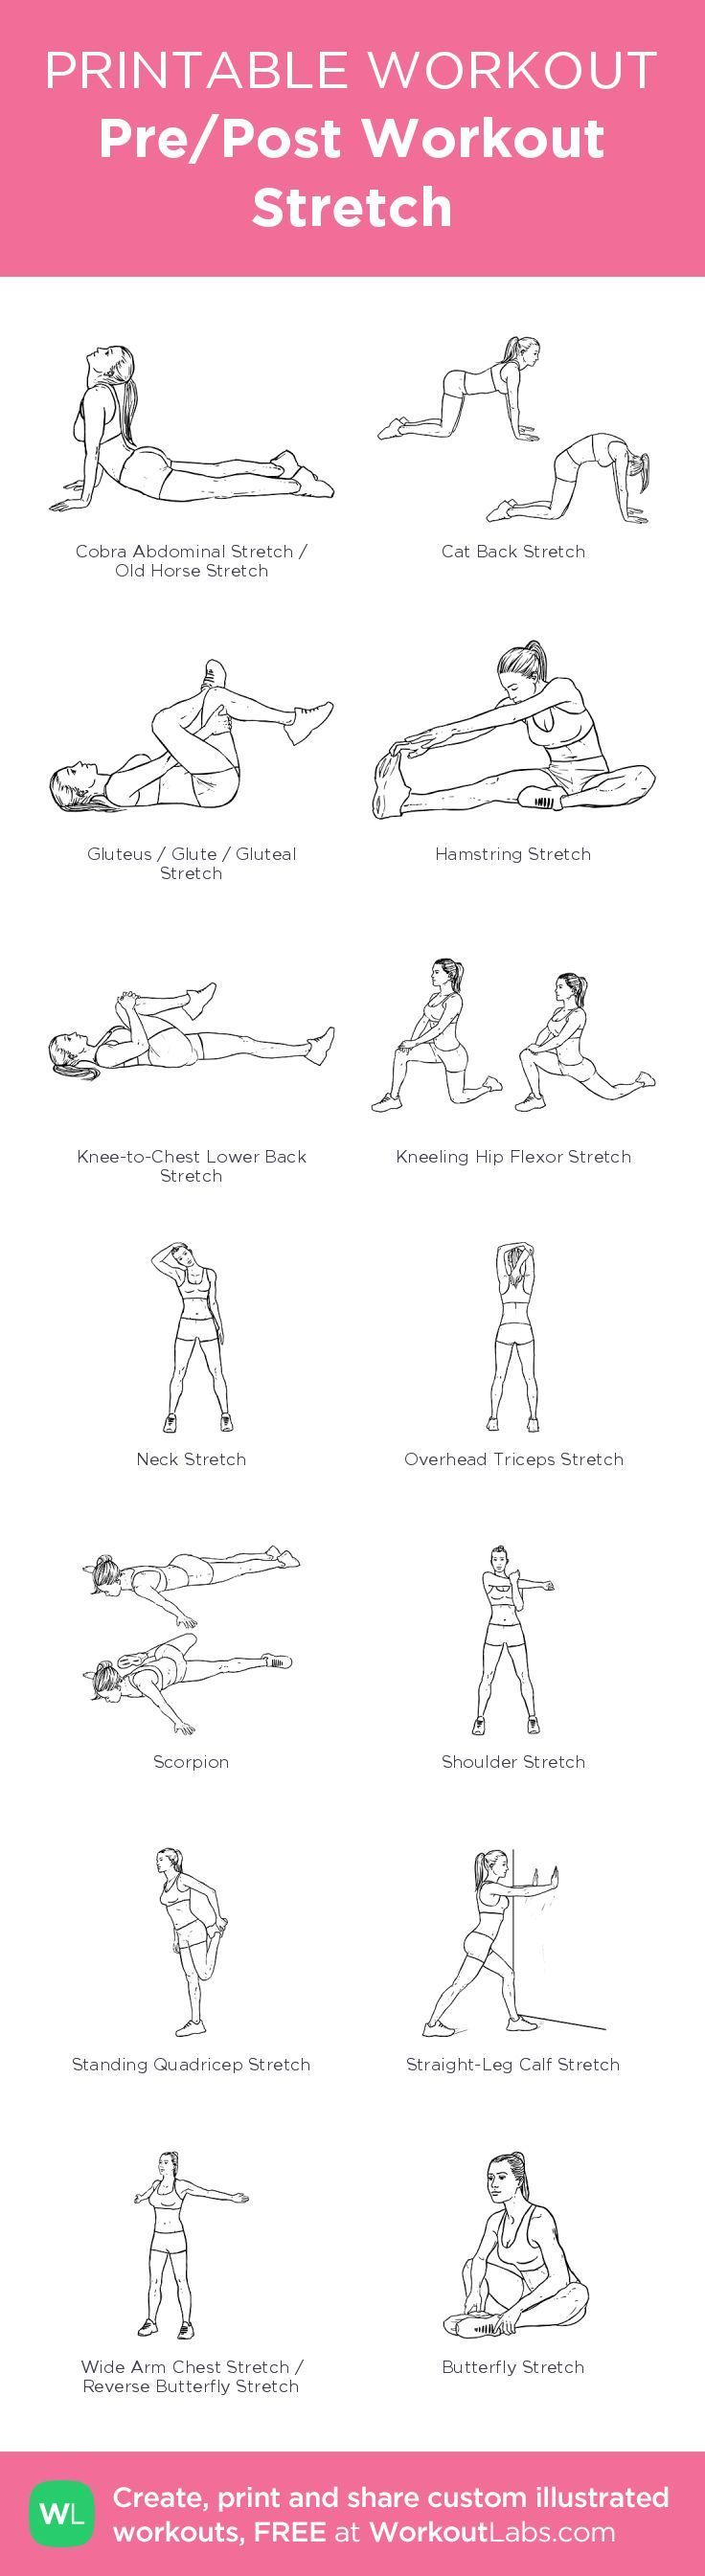 Pre/Post Workout Stretch– my custom exercise plan created at http://WorkoutLabs.com • Click through to download as a printable workout PDF #customworkout - Tap the pin if you love super heroes too! Ca